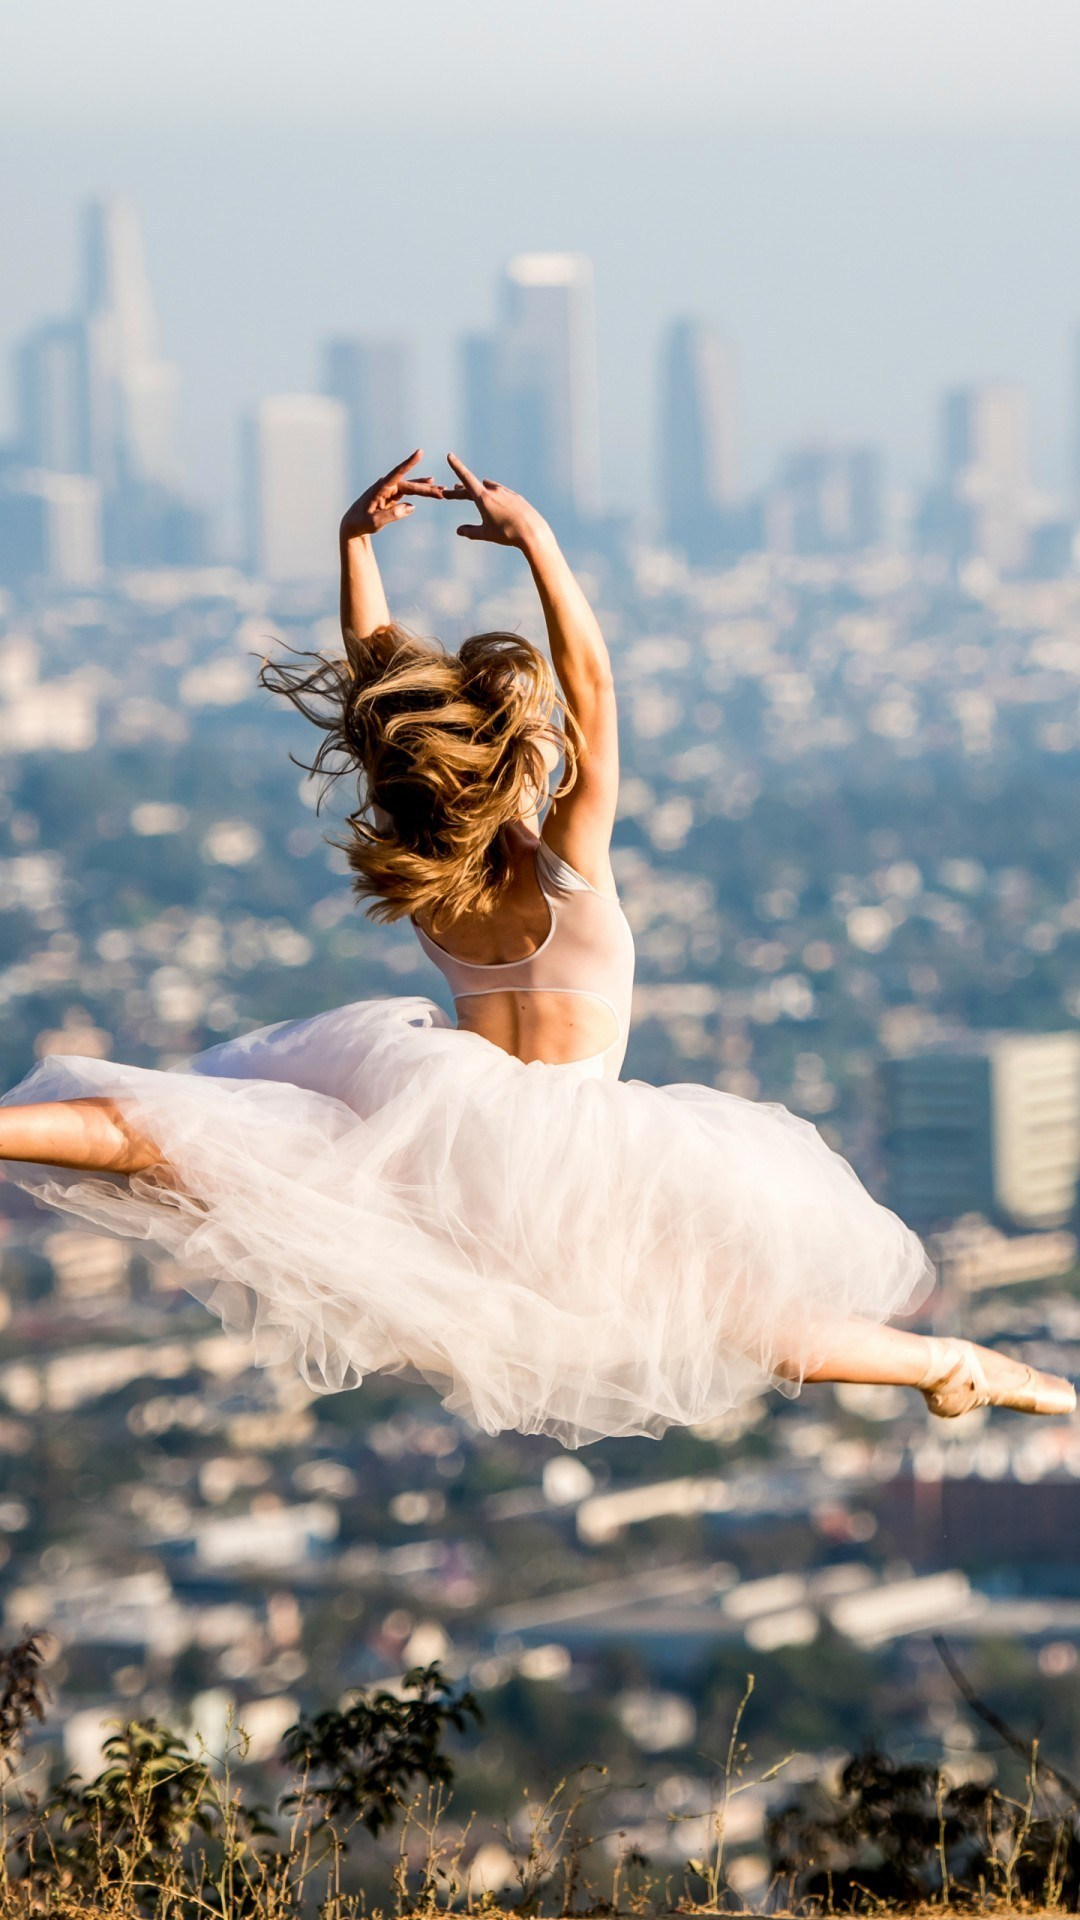 Ballet Dreams Iphone 6 Plus And 5 4 Wallpapers Bmw - Ballet Wallpaper Iphone , HD Wallpaper & Backgrounds